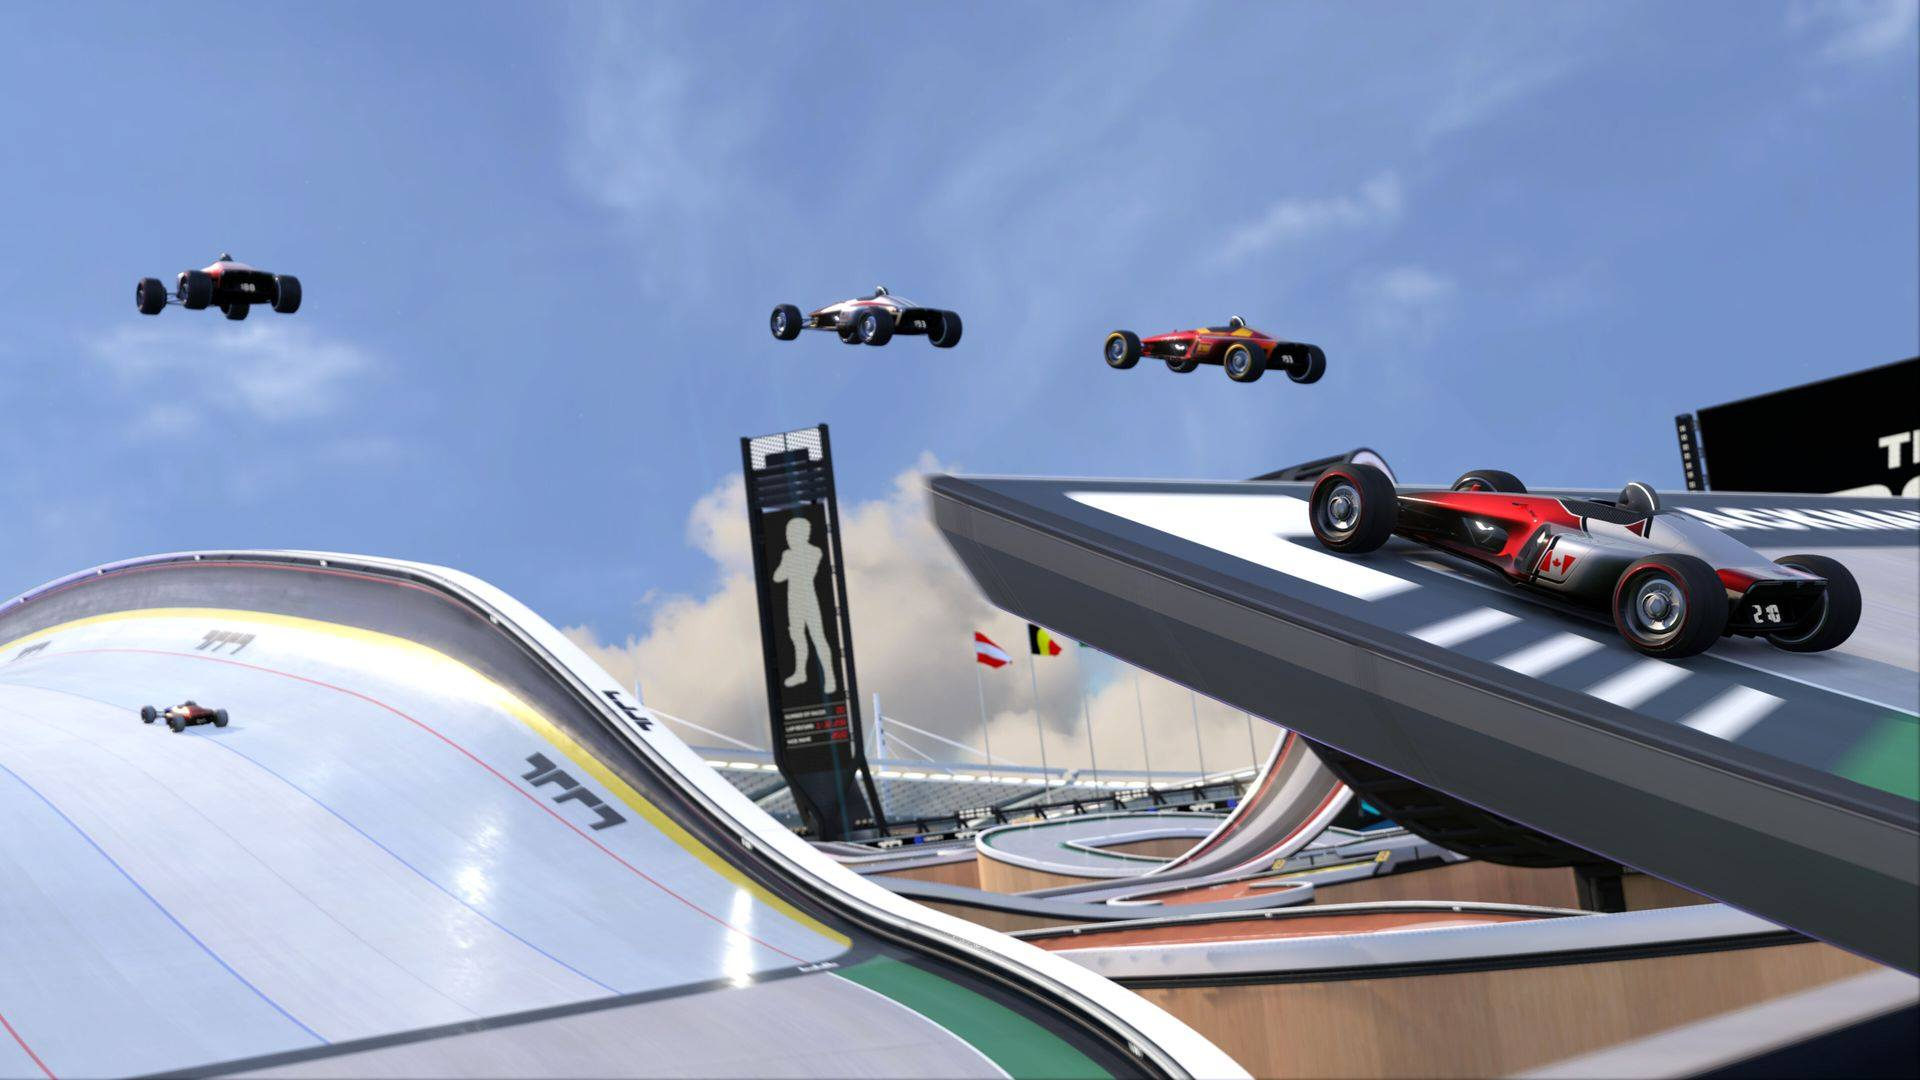 Trackmania will be free with paid subscriptions - htxt.africa